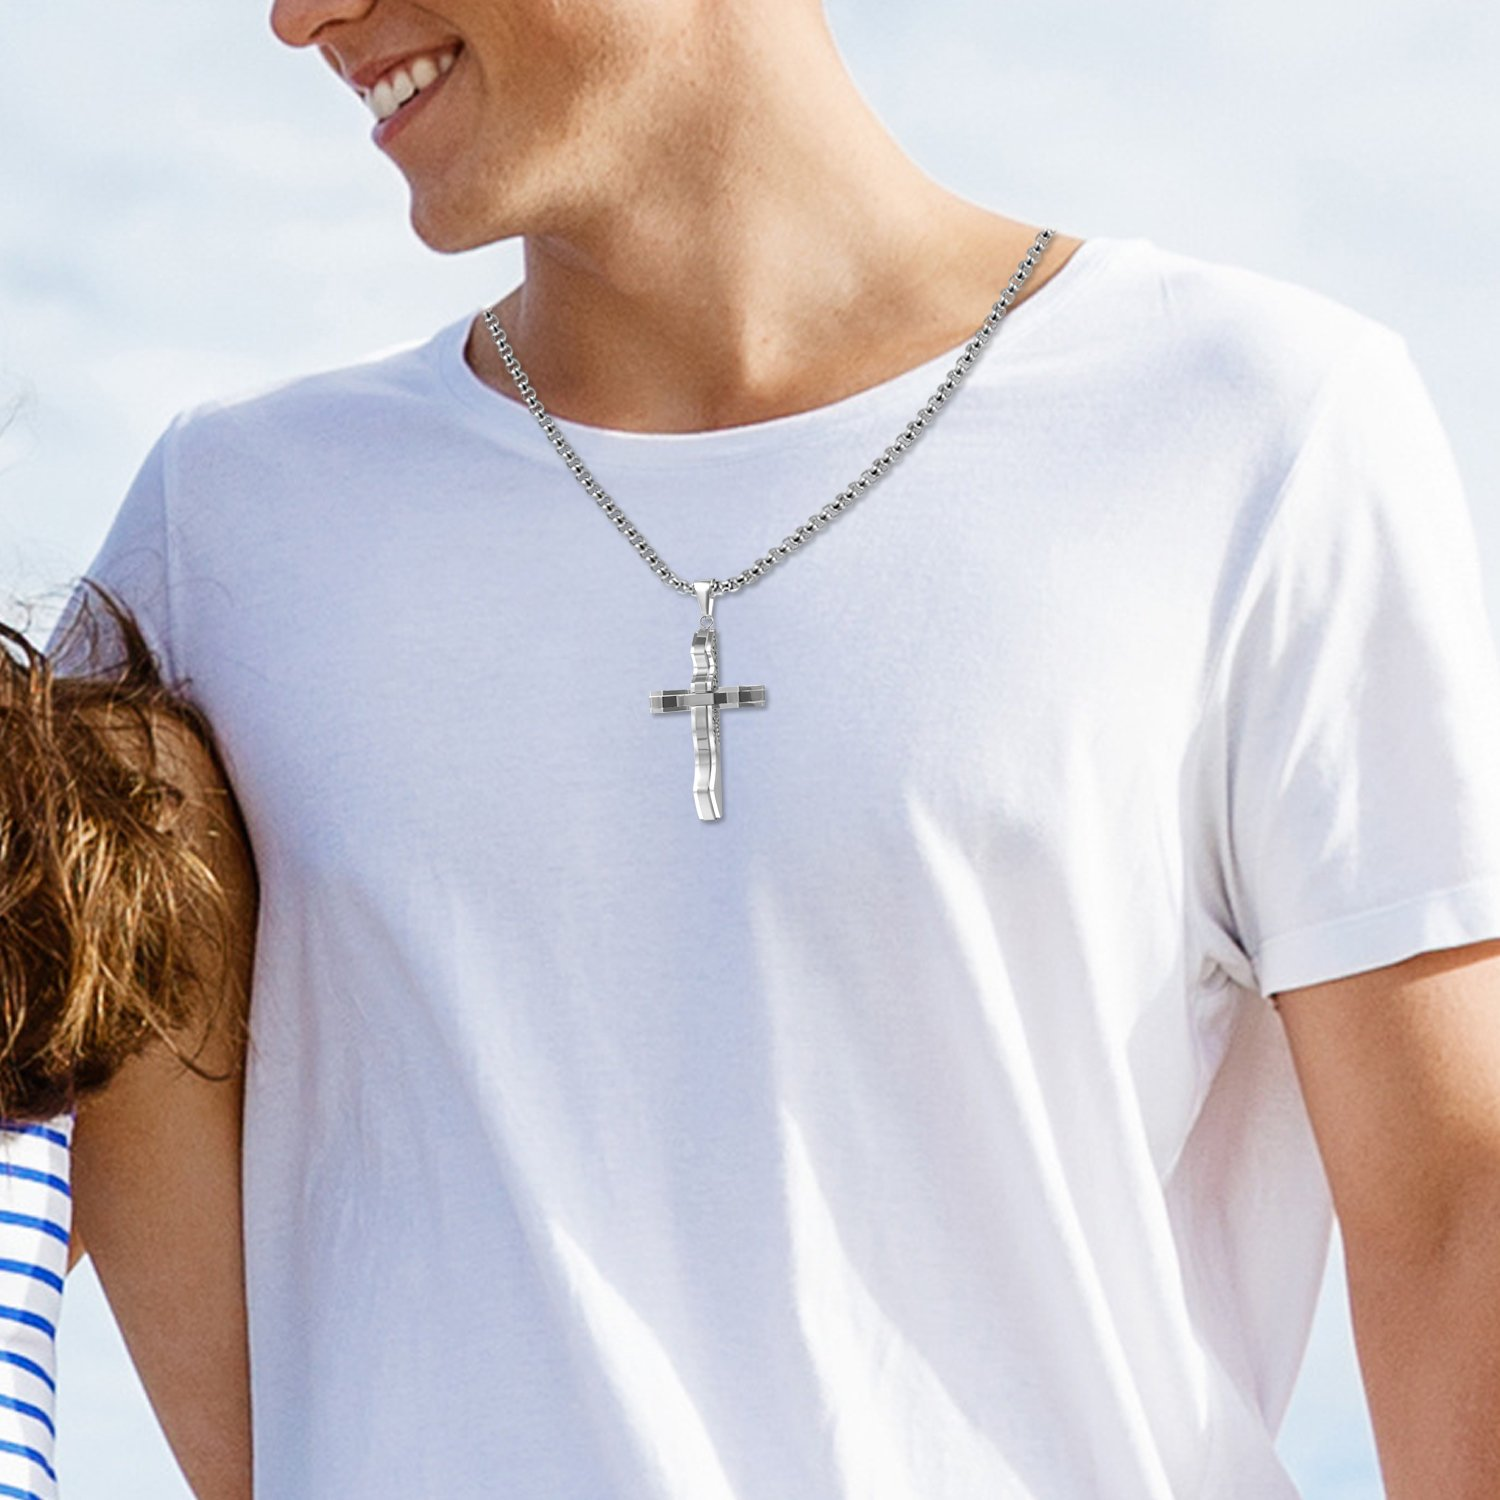 22 inch Chain Flongo Mens Punk Rock Stainless Steel Curved Cross Pendant Necklace Prayer Vintage Christmas